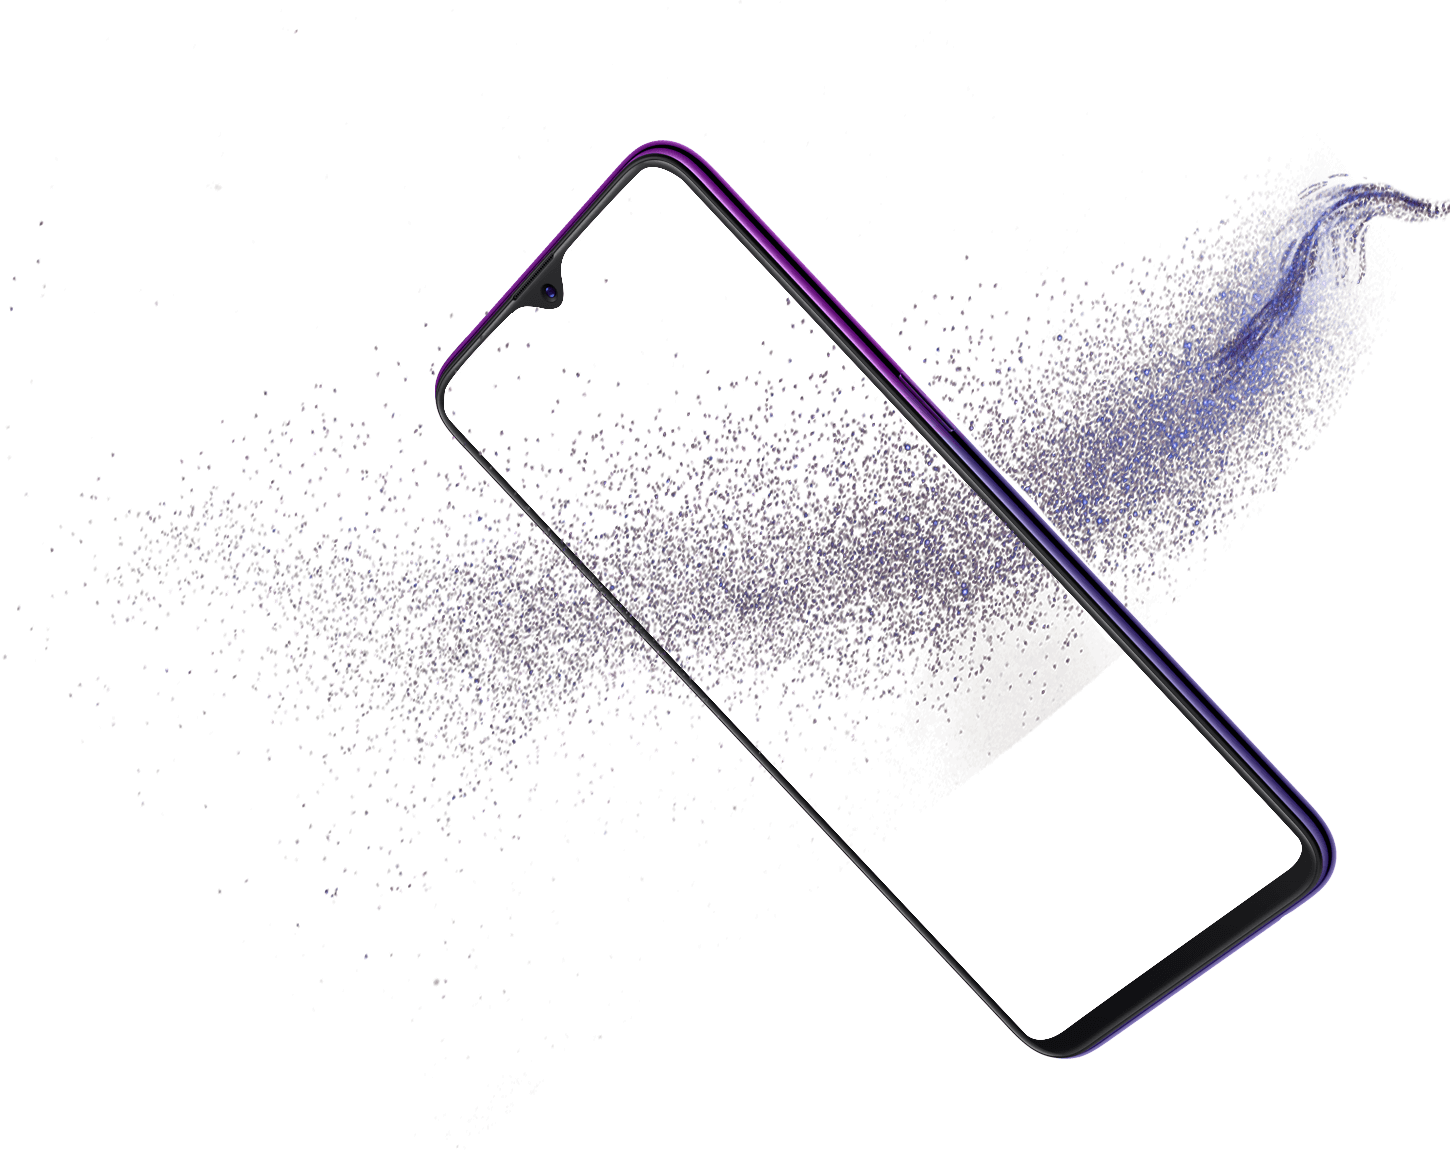 OPPO F9 Starry Purple Edition - Explore and Discover the Starry Night